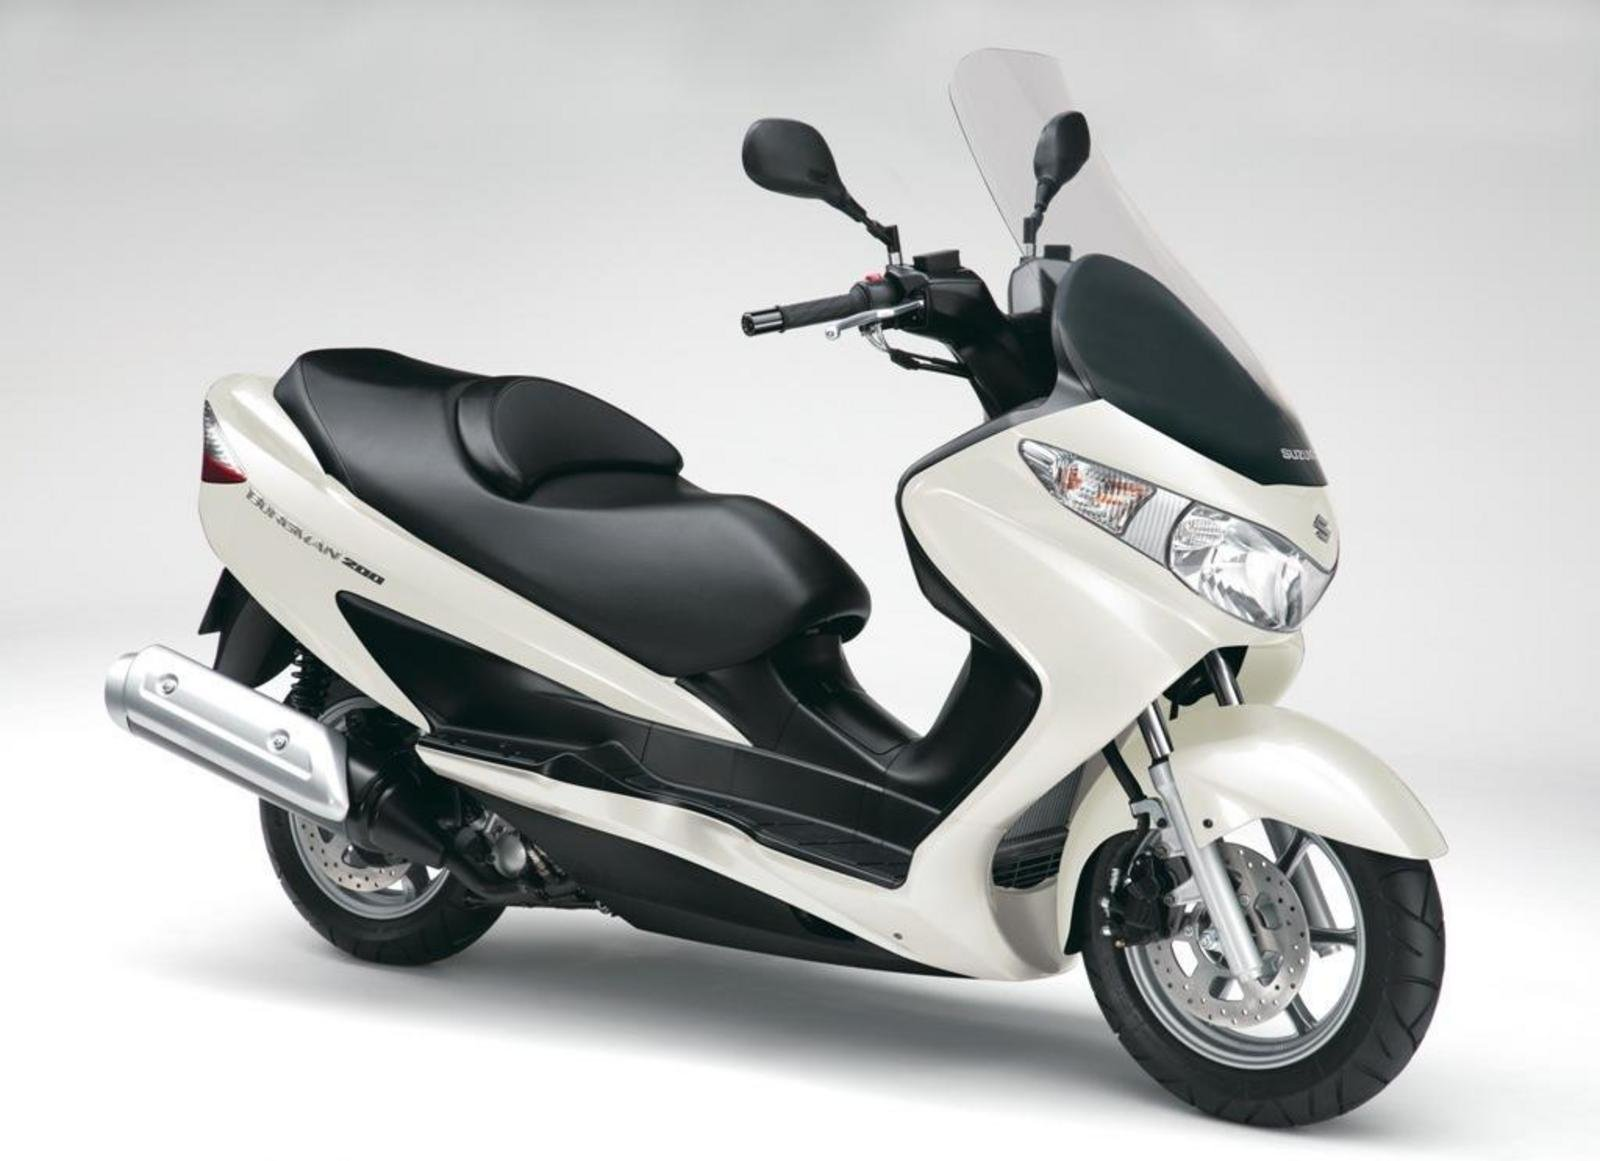 2013 suzuki burgman 200 review top speed. Black Bedroom Furniture Sets. Home Design Ideas